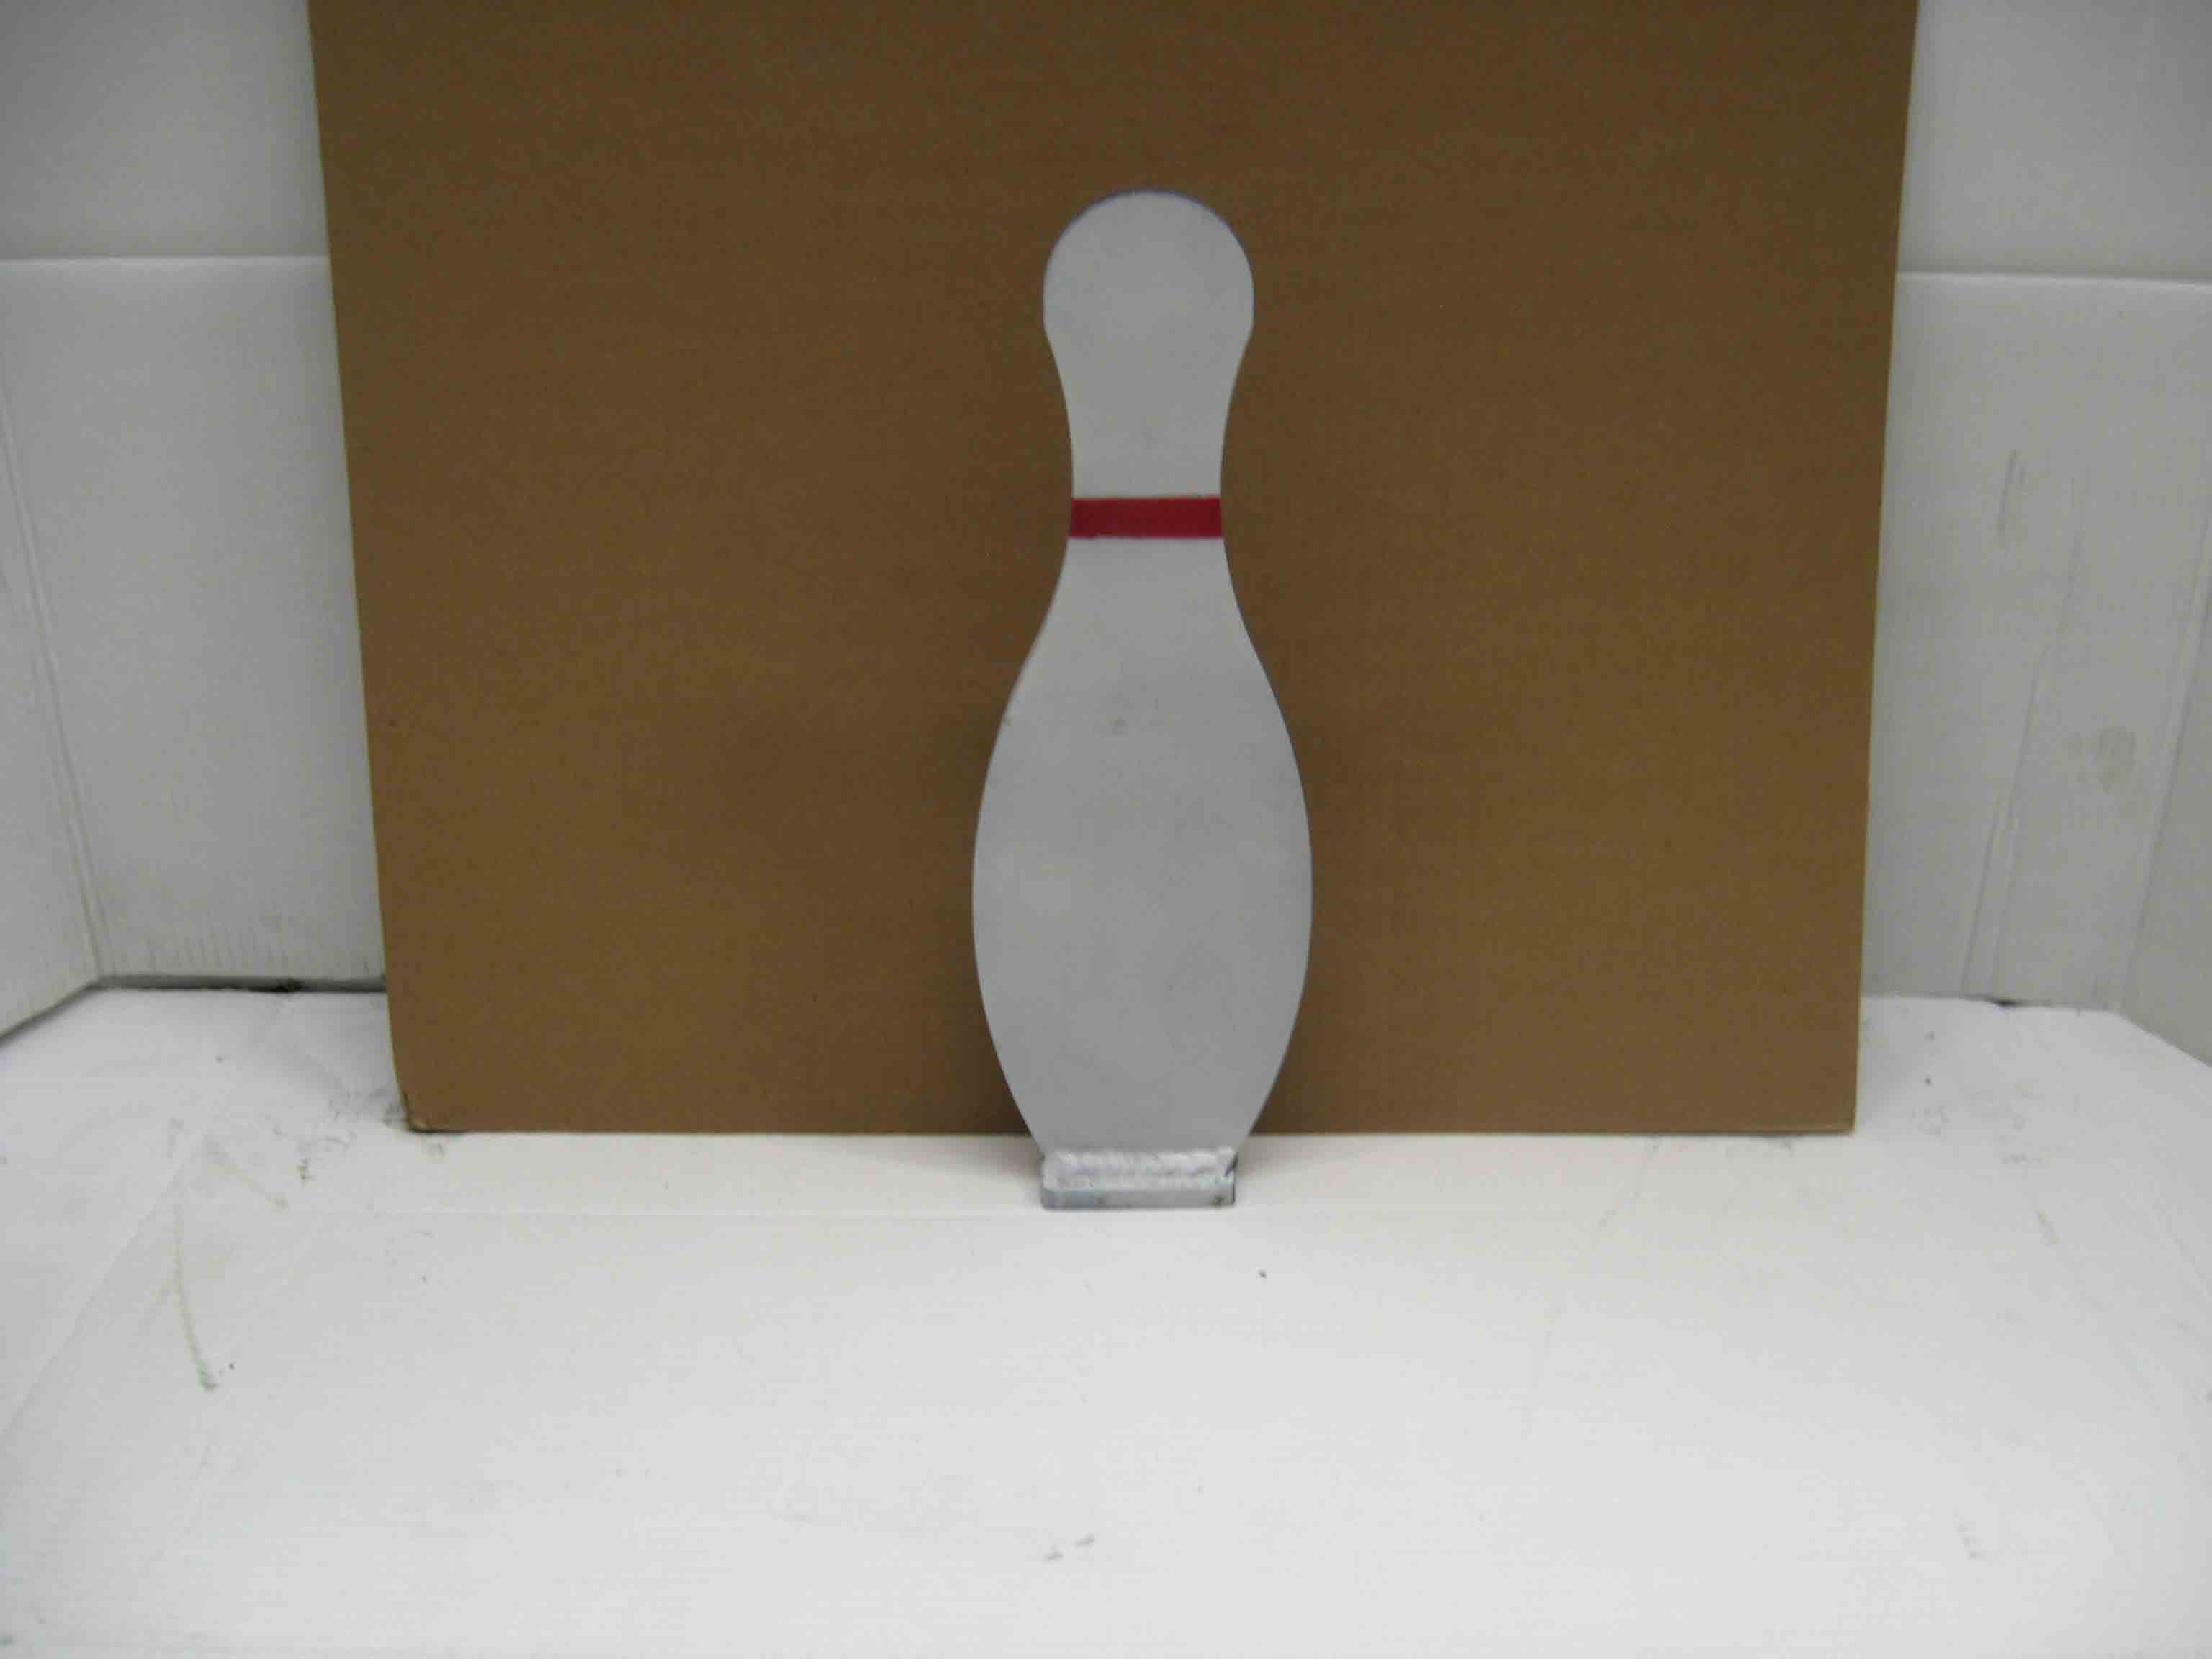 Bowling pin Knock Down Plates 6 Pack Steel Shooting Targets